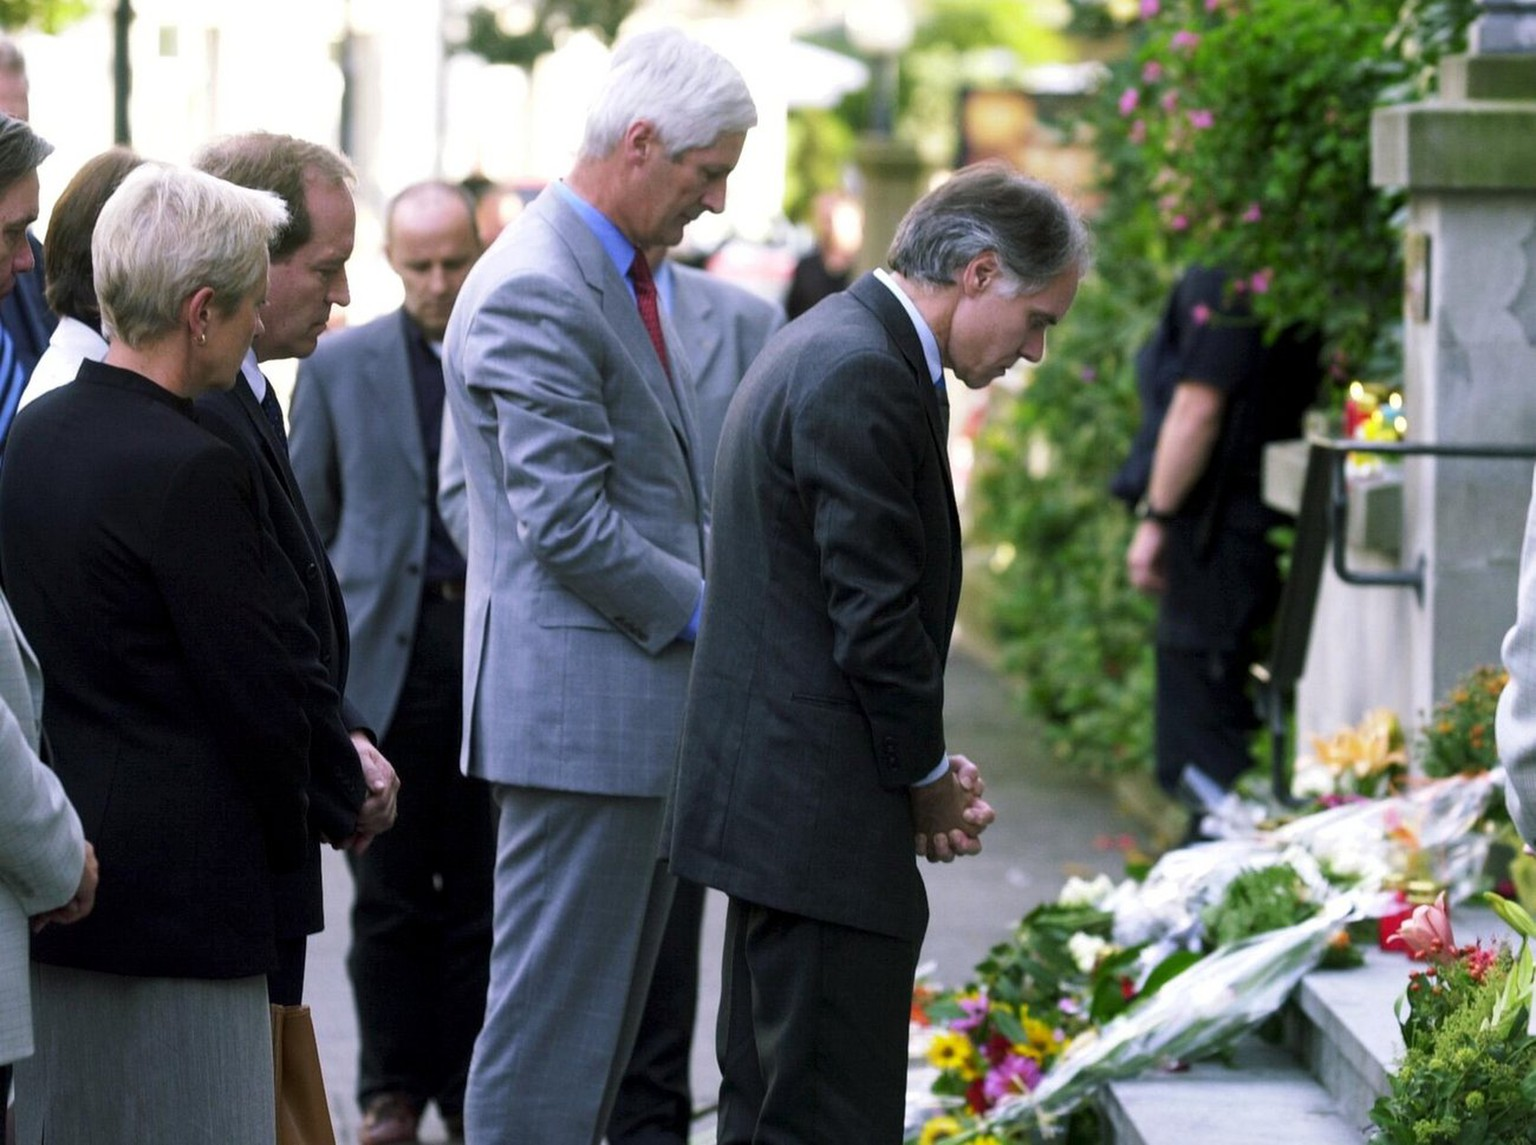 Swiss president, Moritz Leuenberger, right, und the president of the lower house of the Swiss Parliament, Peter Hess, left, have a moment of silence in front of the Parliament's building, in Zug, Switzerland, after a gunmen stormed the regional assembly and opened fire on Thursday, September 27, 2001. 15 people have been killed, including 3 members of government, 11 members of regional parliament and the gunman himself. Police identified the attacker as Friedrich Leibacher, a 57-year-old Swiss from the canton of Zurich. (KEYSTONE/Walter Bieri)